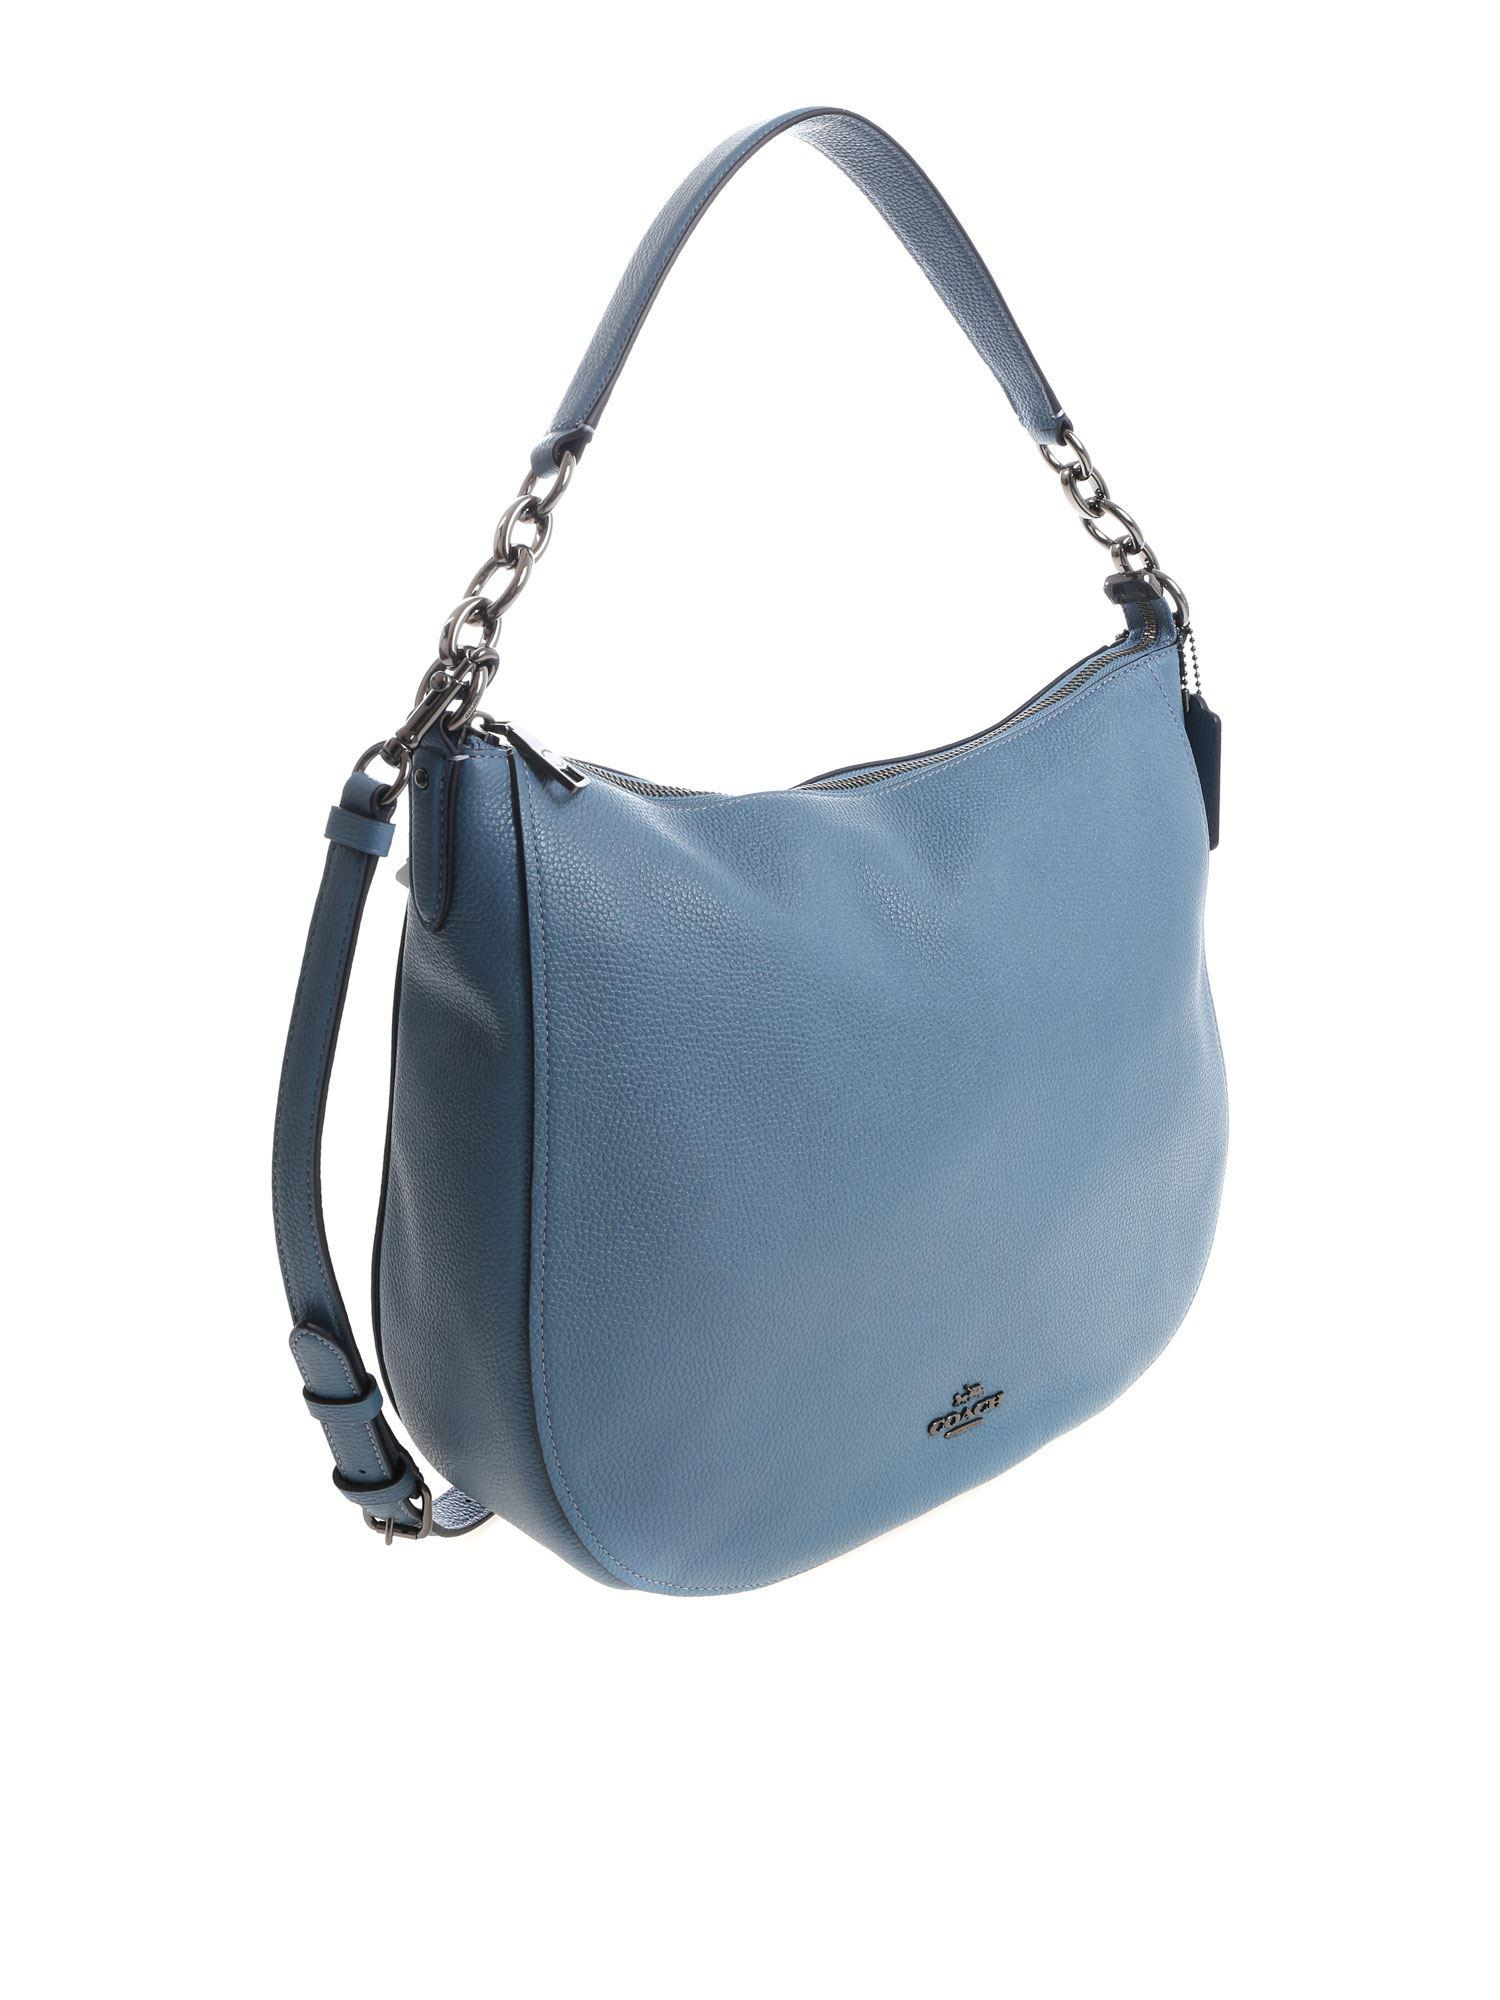 ef8f61688b11 COACH - Light Blue Cross-body Bag - Lyst. View fullscreen